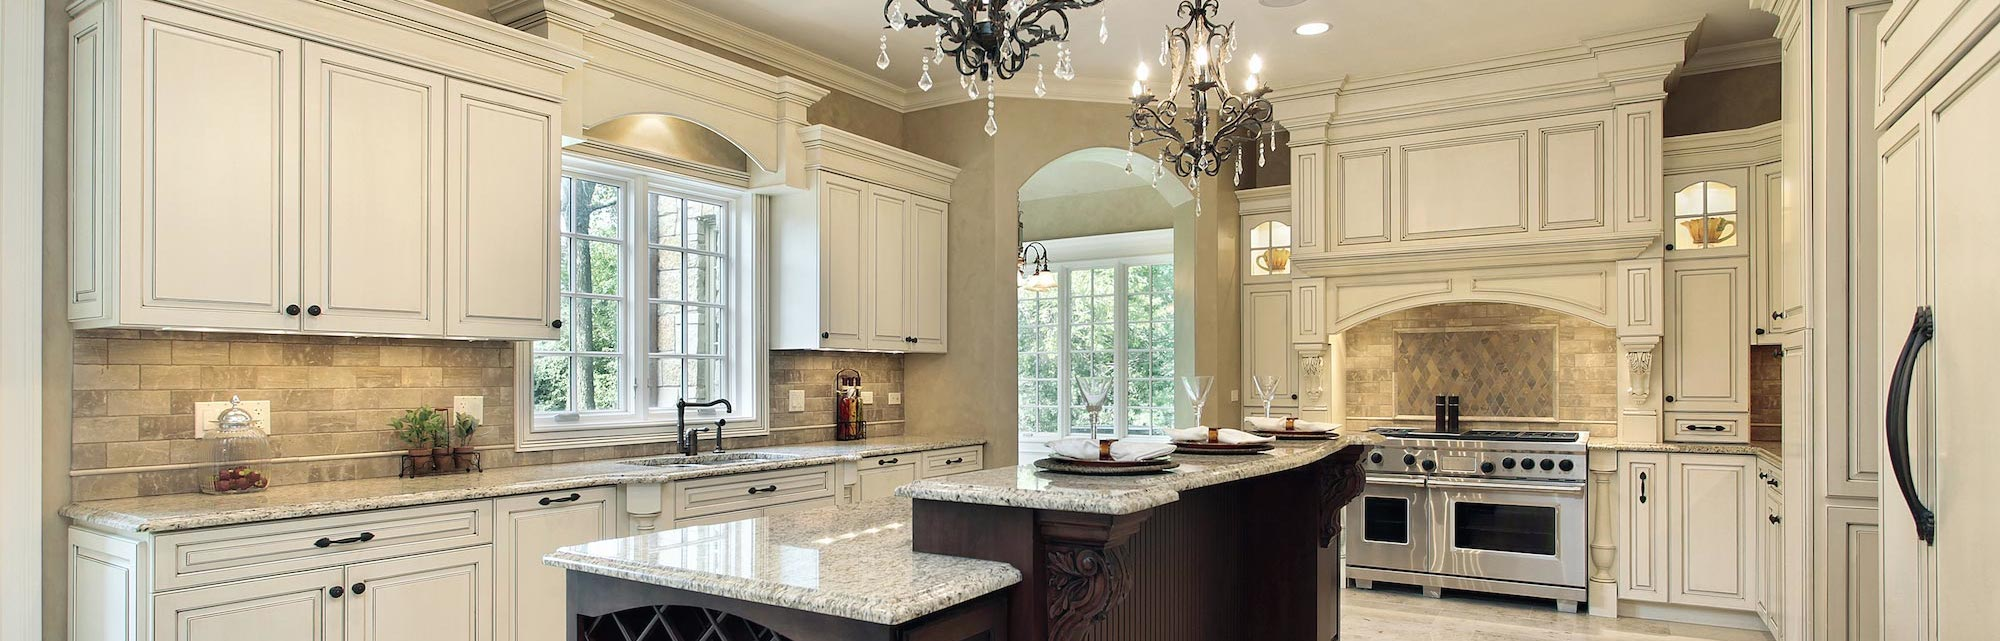 kitchens long island brightwaters cabinets long island ny kitchen cabinets long island 9256